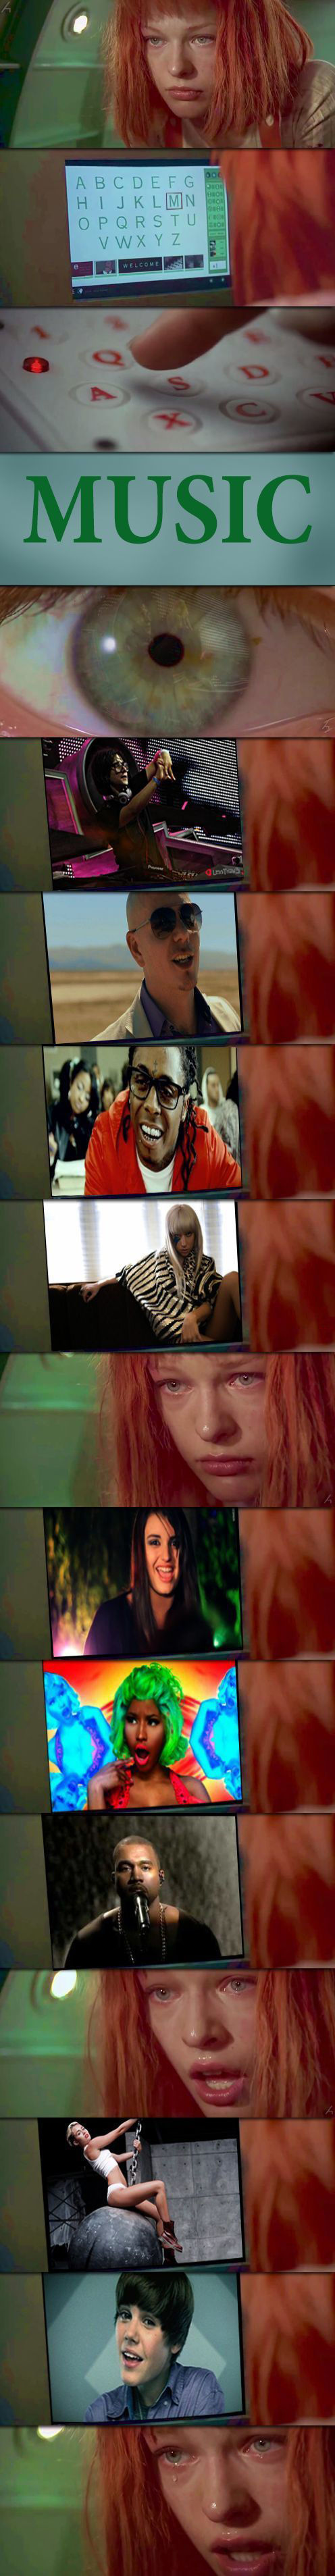 fifth element music